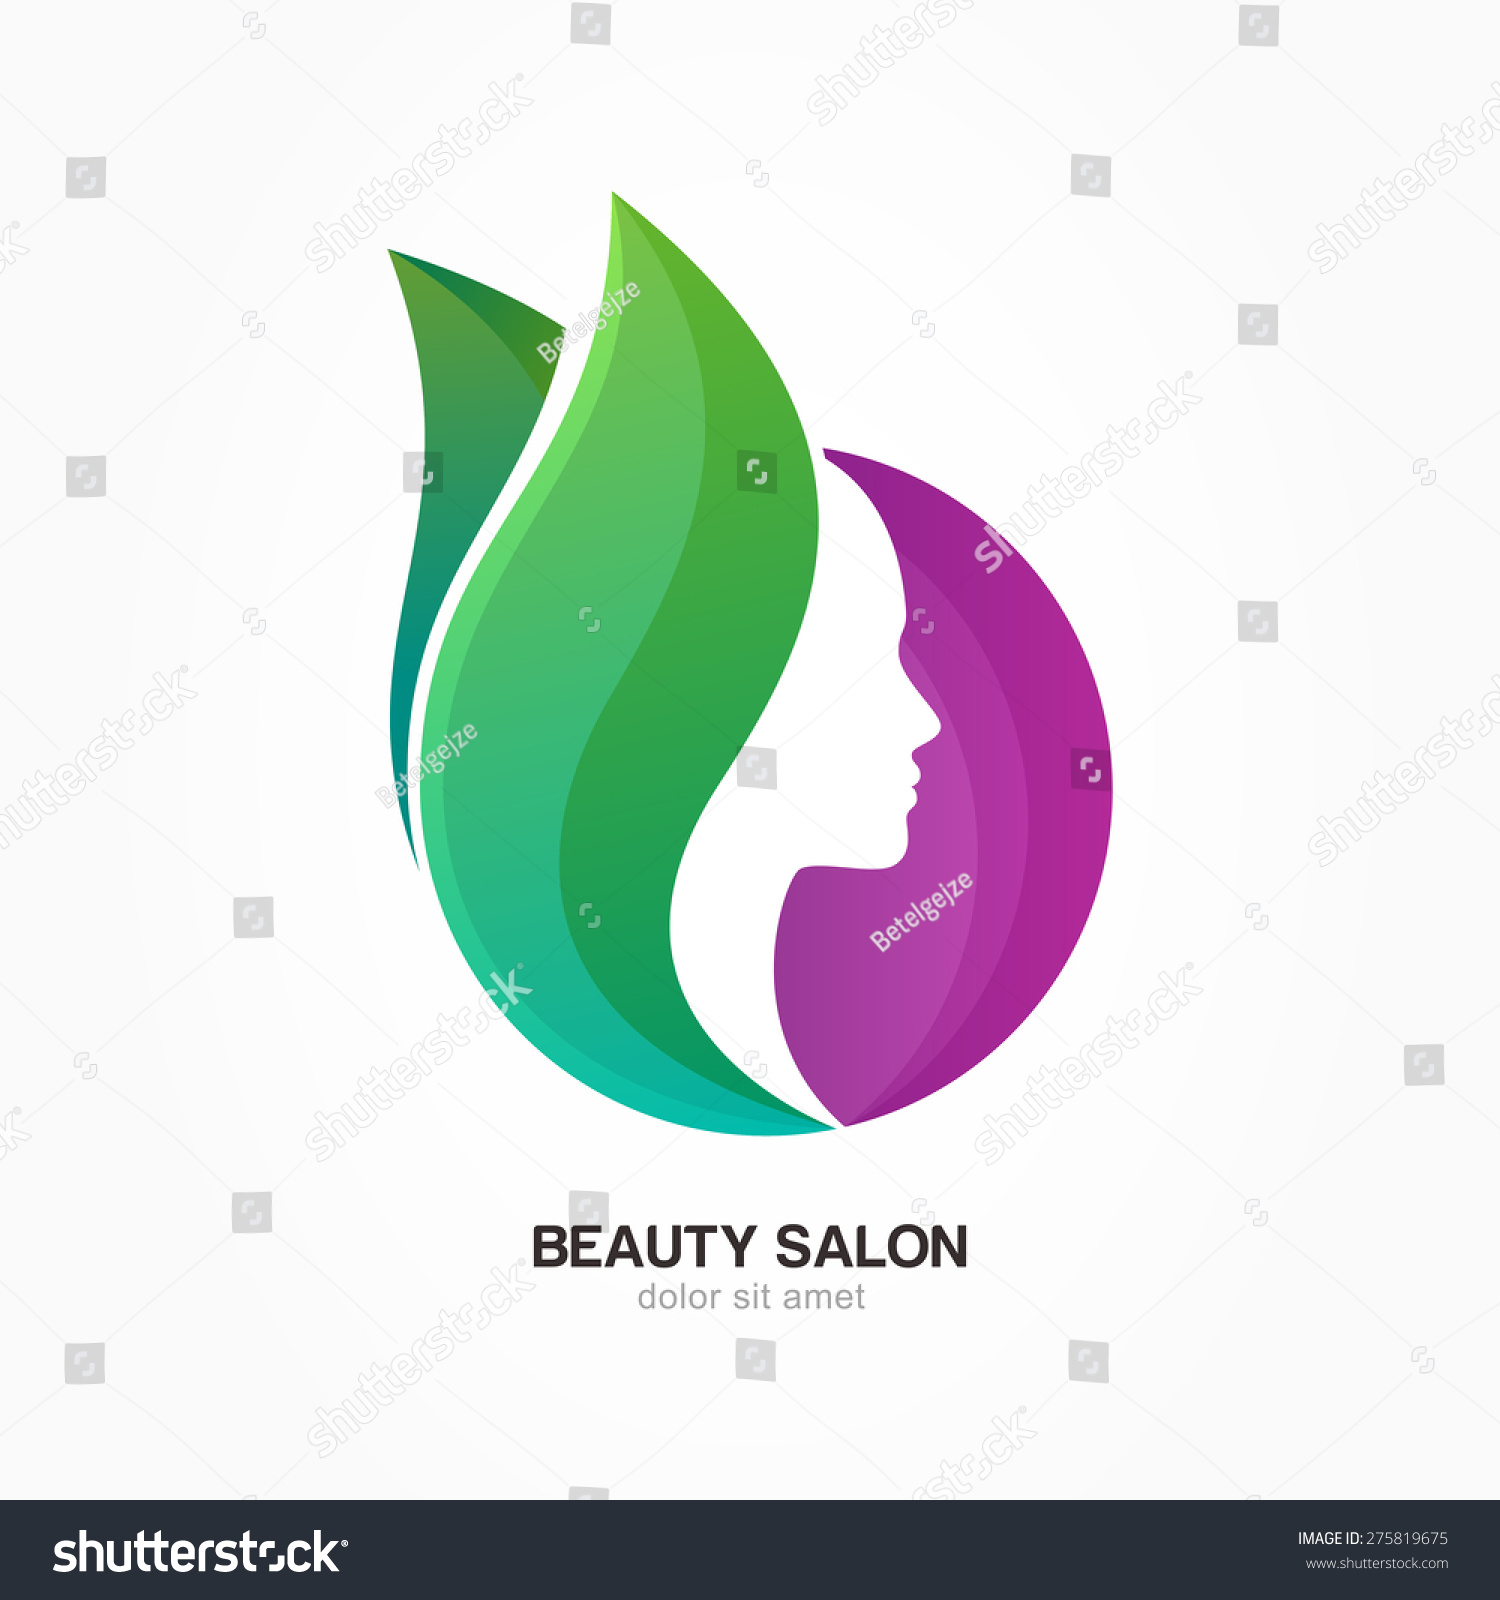 Womans face purple circle shape green stock vector for Abstract beauty salon